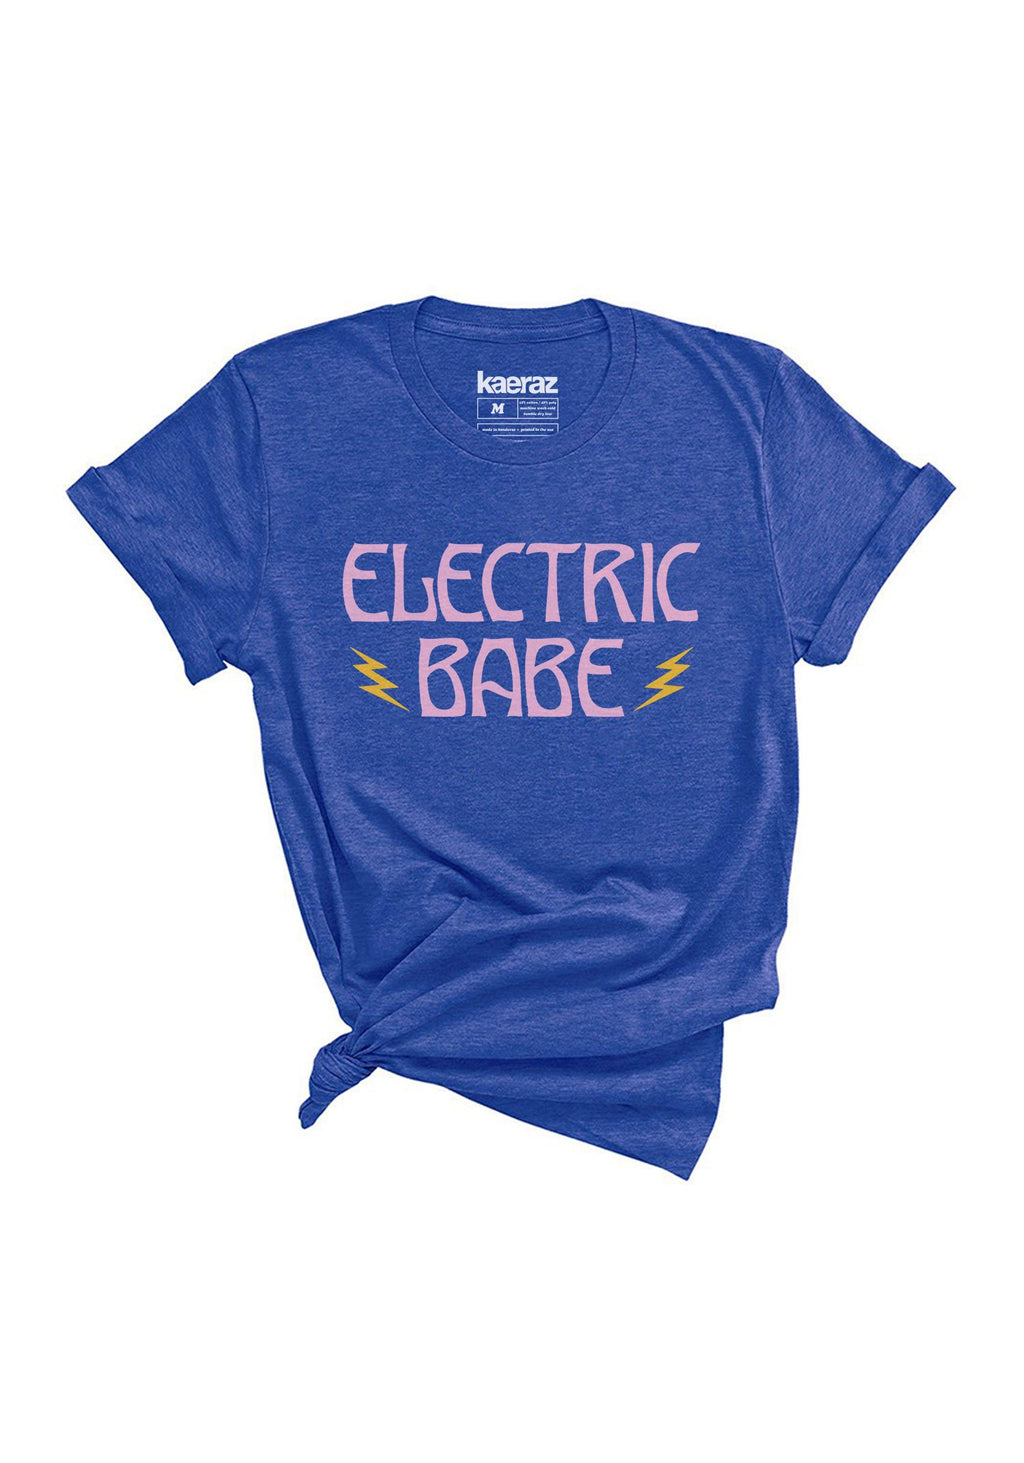 Electric Babe Tee / womens graphic tees / 70s 80s vintage style shirts / retro lightning bolt band t shirt women